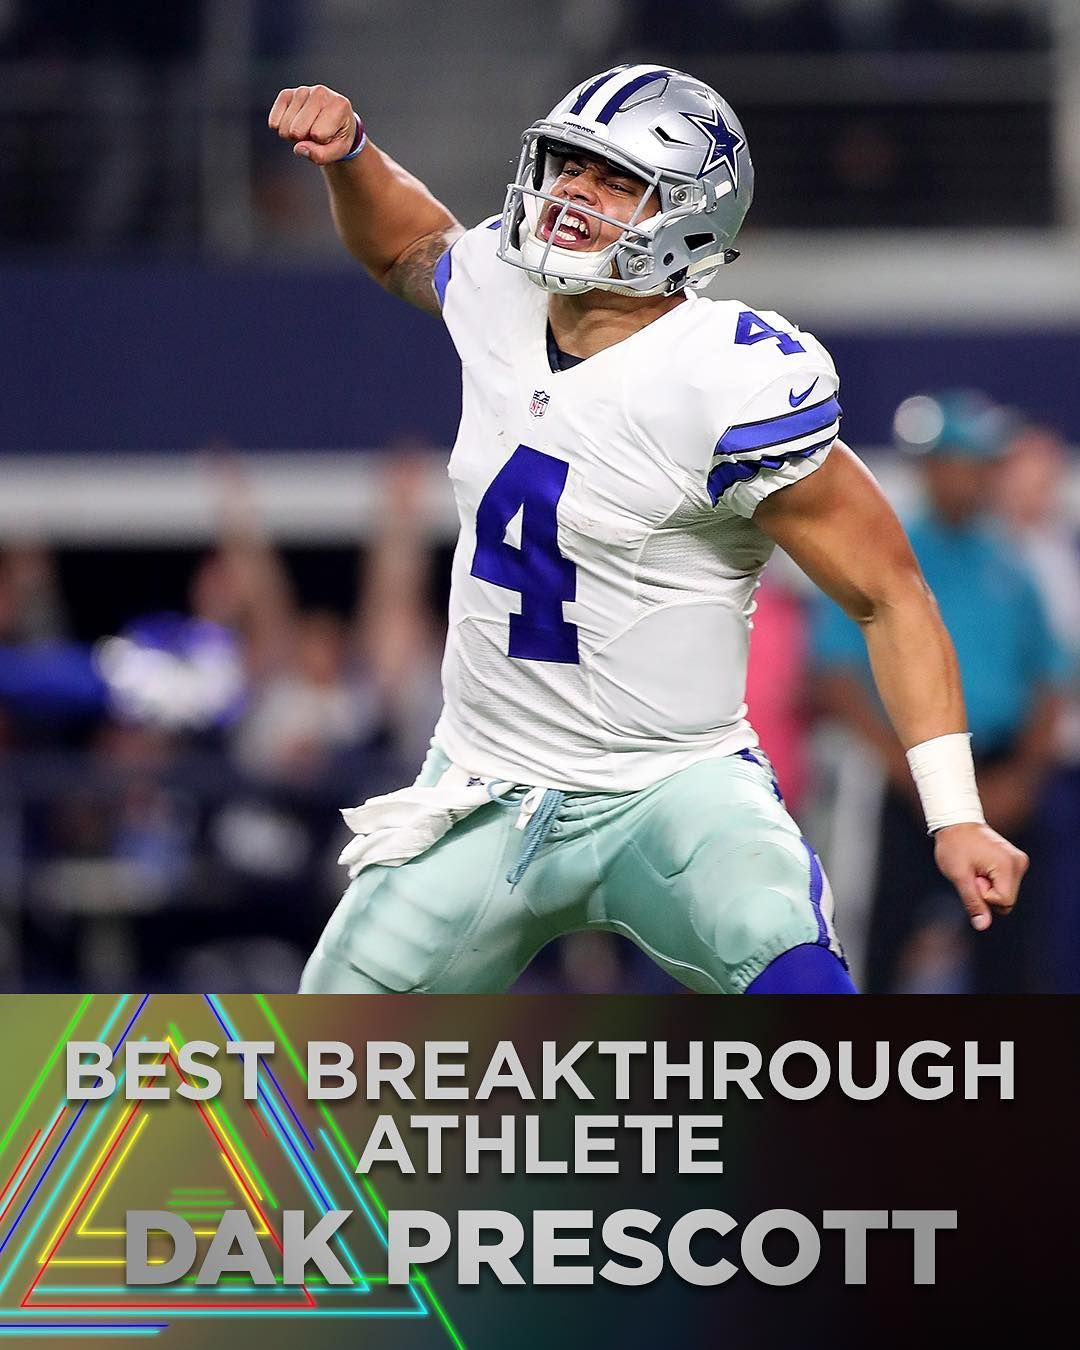 the winner of the 2017 best breakthrough athlete is dallas cowboys